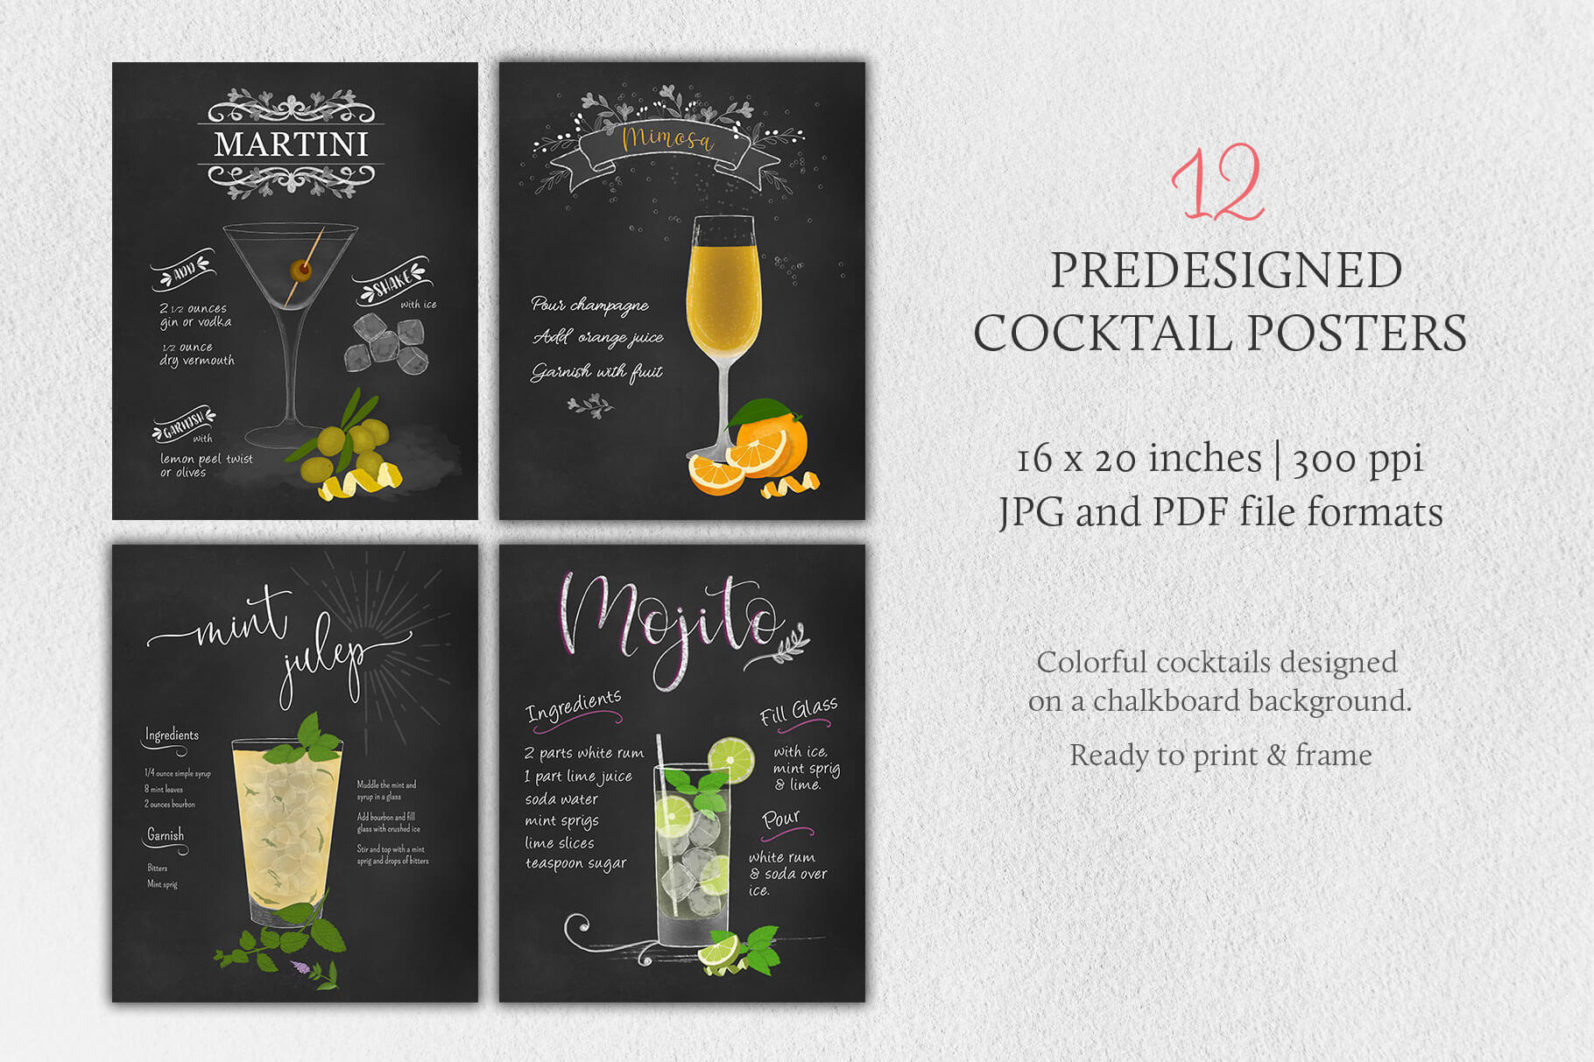 Cocktail Illustrations & Posters - page posters 2 -